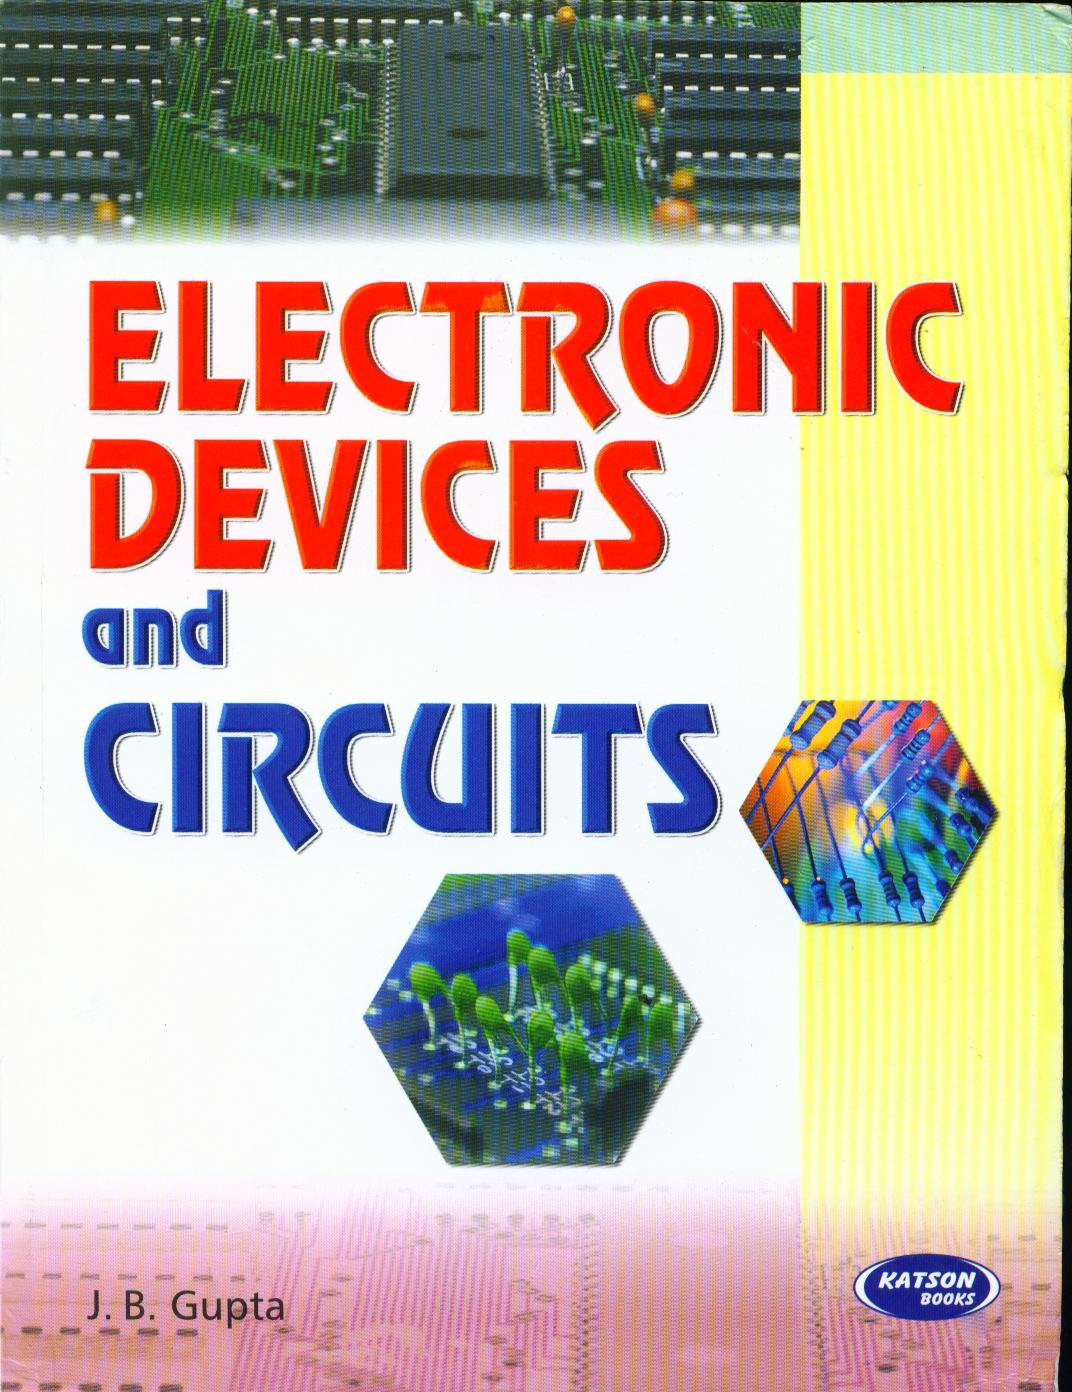 electronic devices and circuits by jb gupta swapping the book